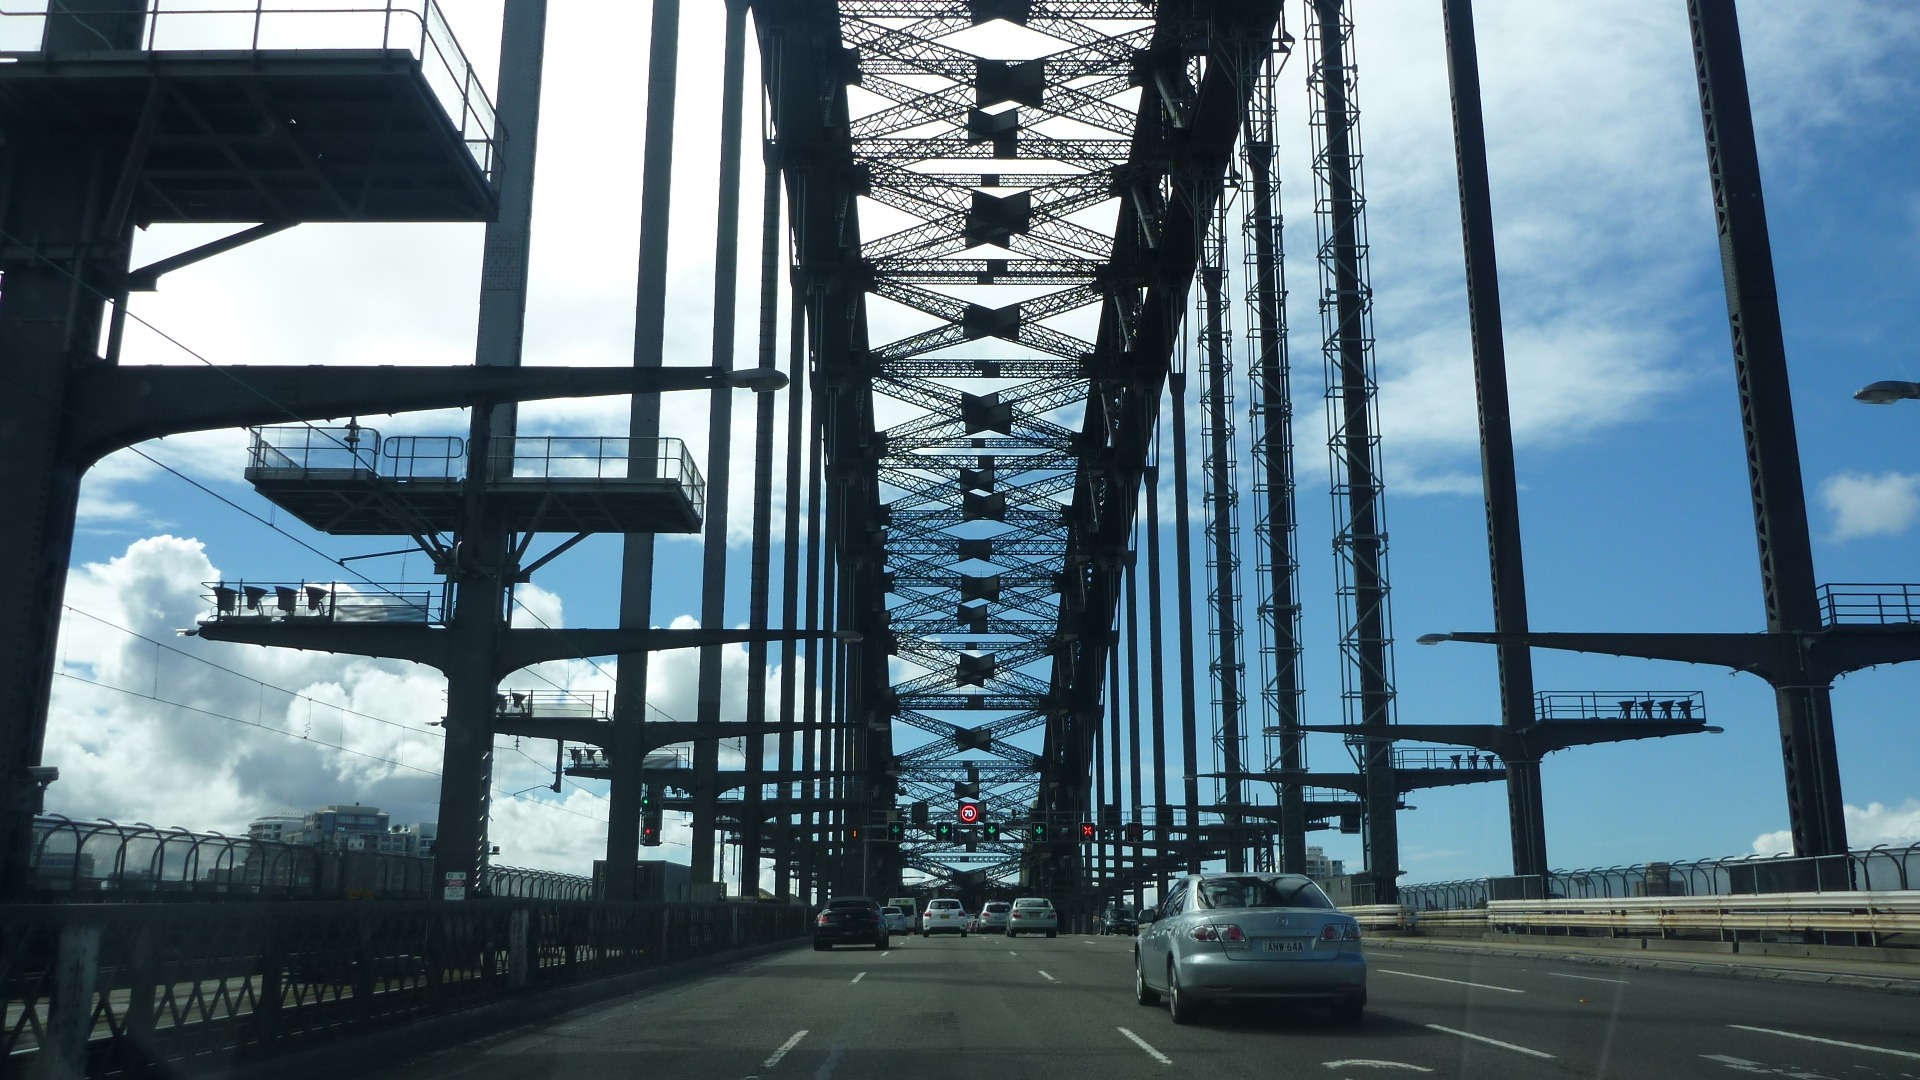 city,metropolis,span,bridge,nosepiece,urban center,bridge circuit,architecture,sydney,bridgework,bridge deck,structure